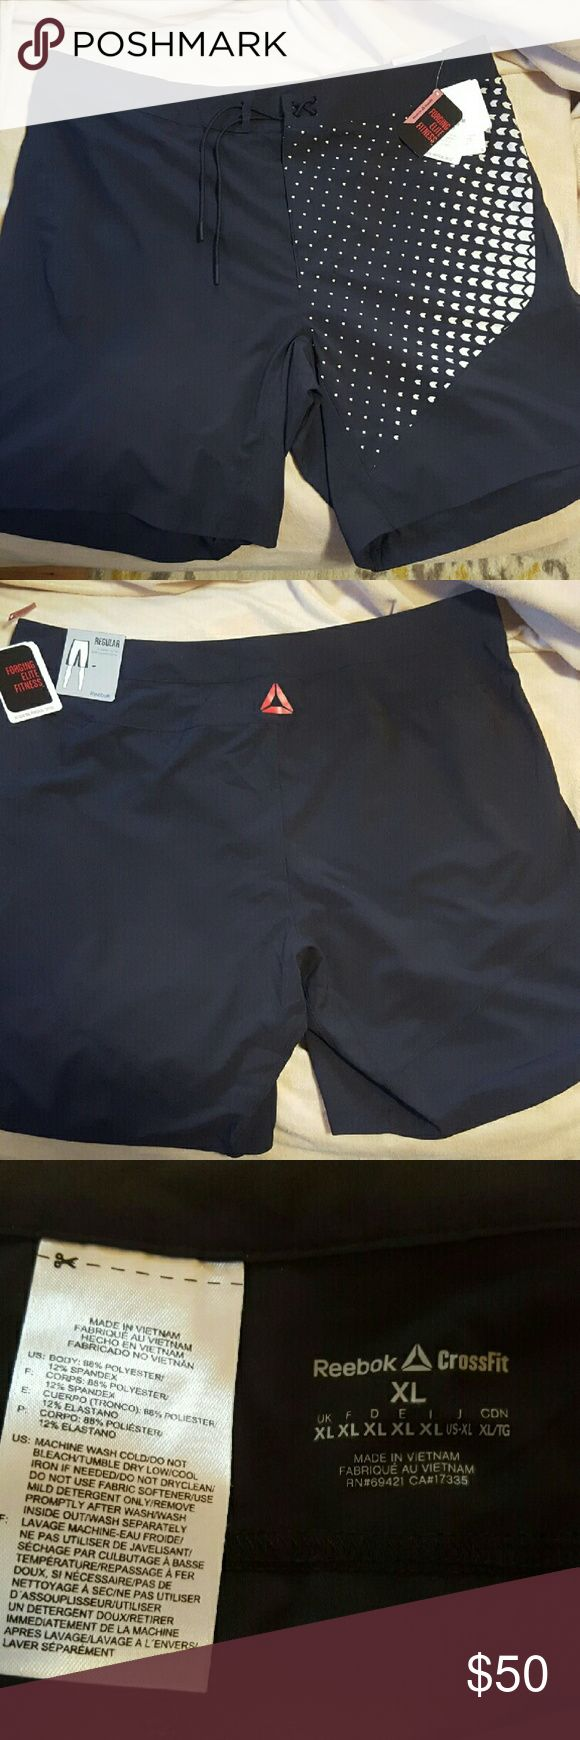 Reebok Crossfit Shorts - Mens XL Brand new, never worn, mens XL Reebok Crossfit shorts Reebok Shorts Athletic